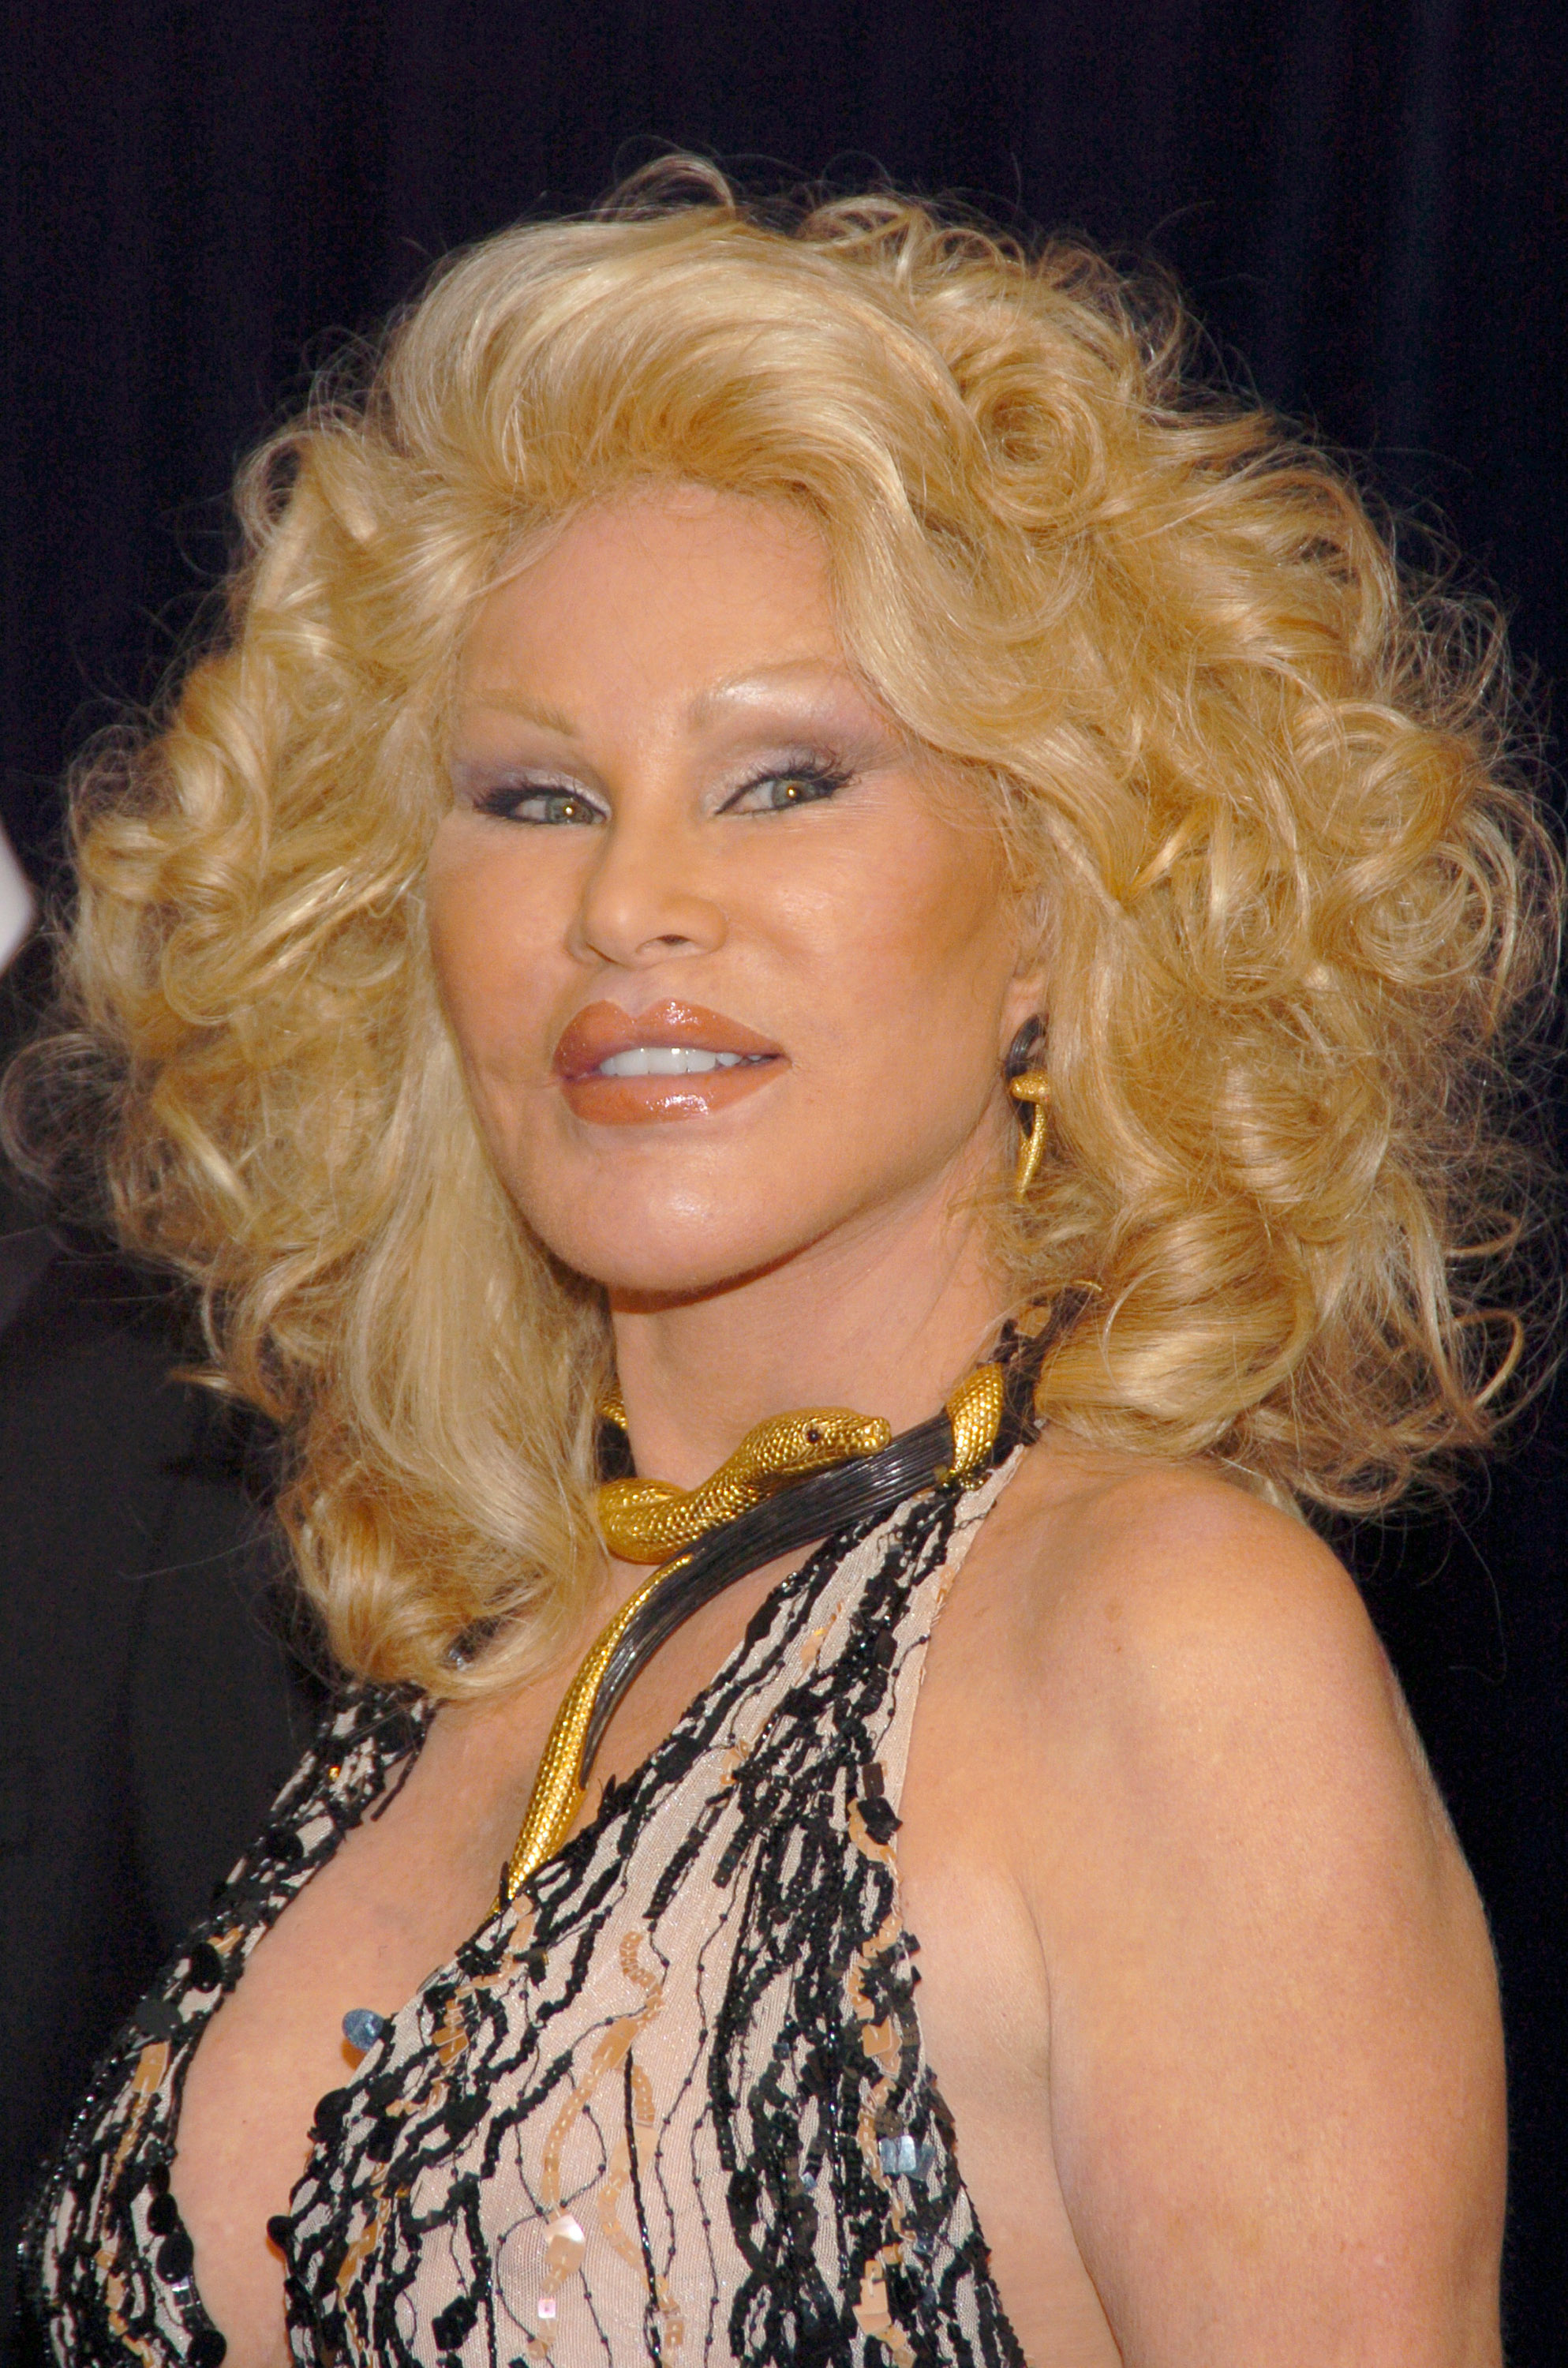 Jocelyn Wildenstein Wallpapers High Quality   Download Free